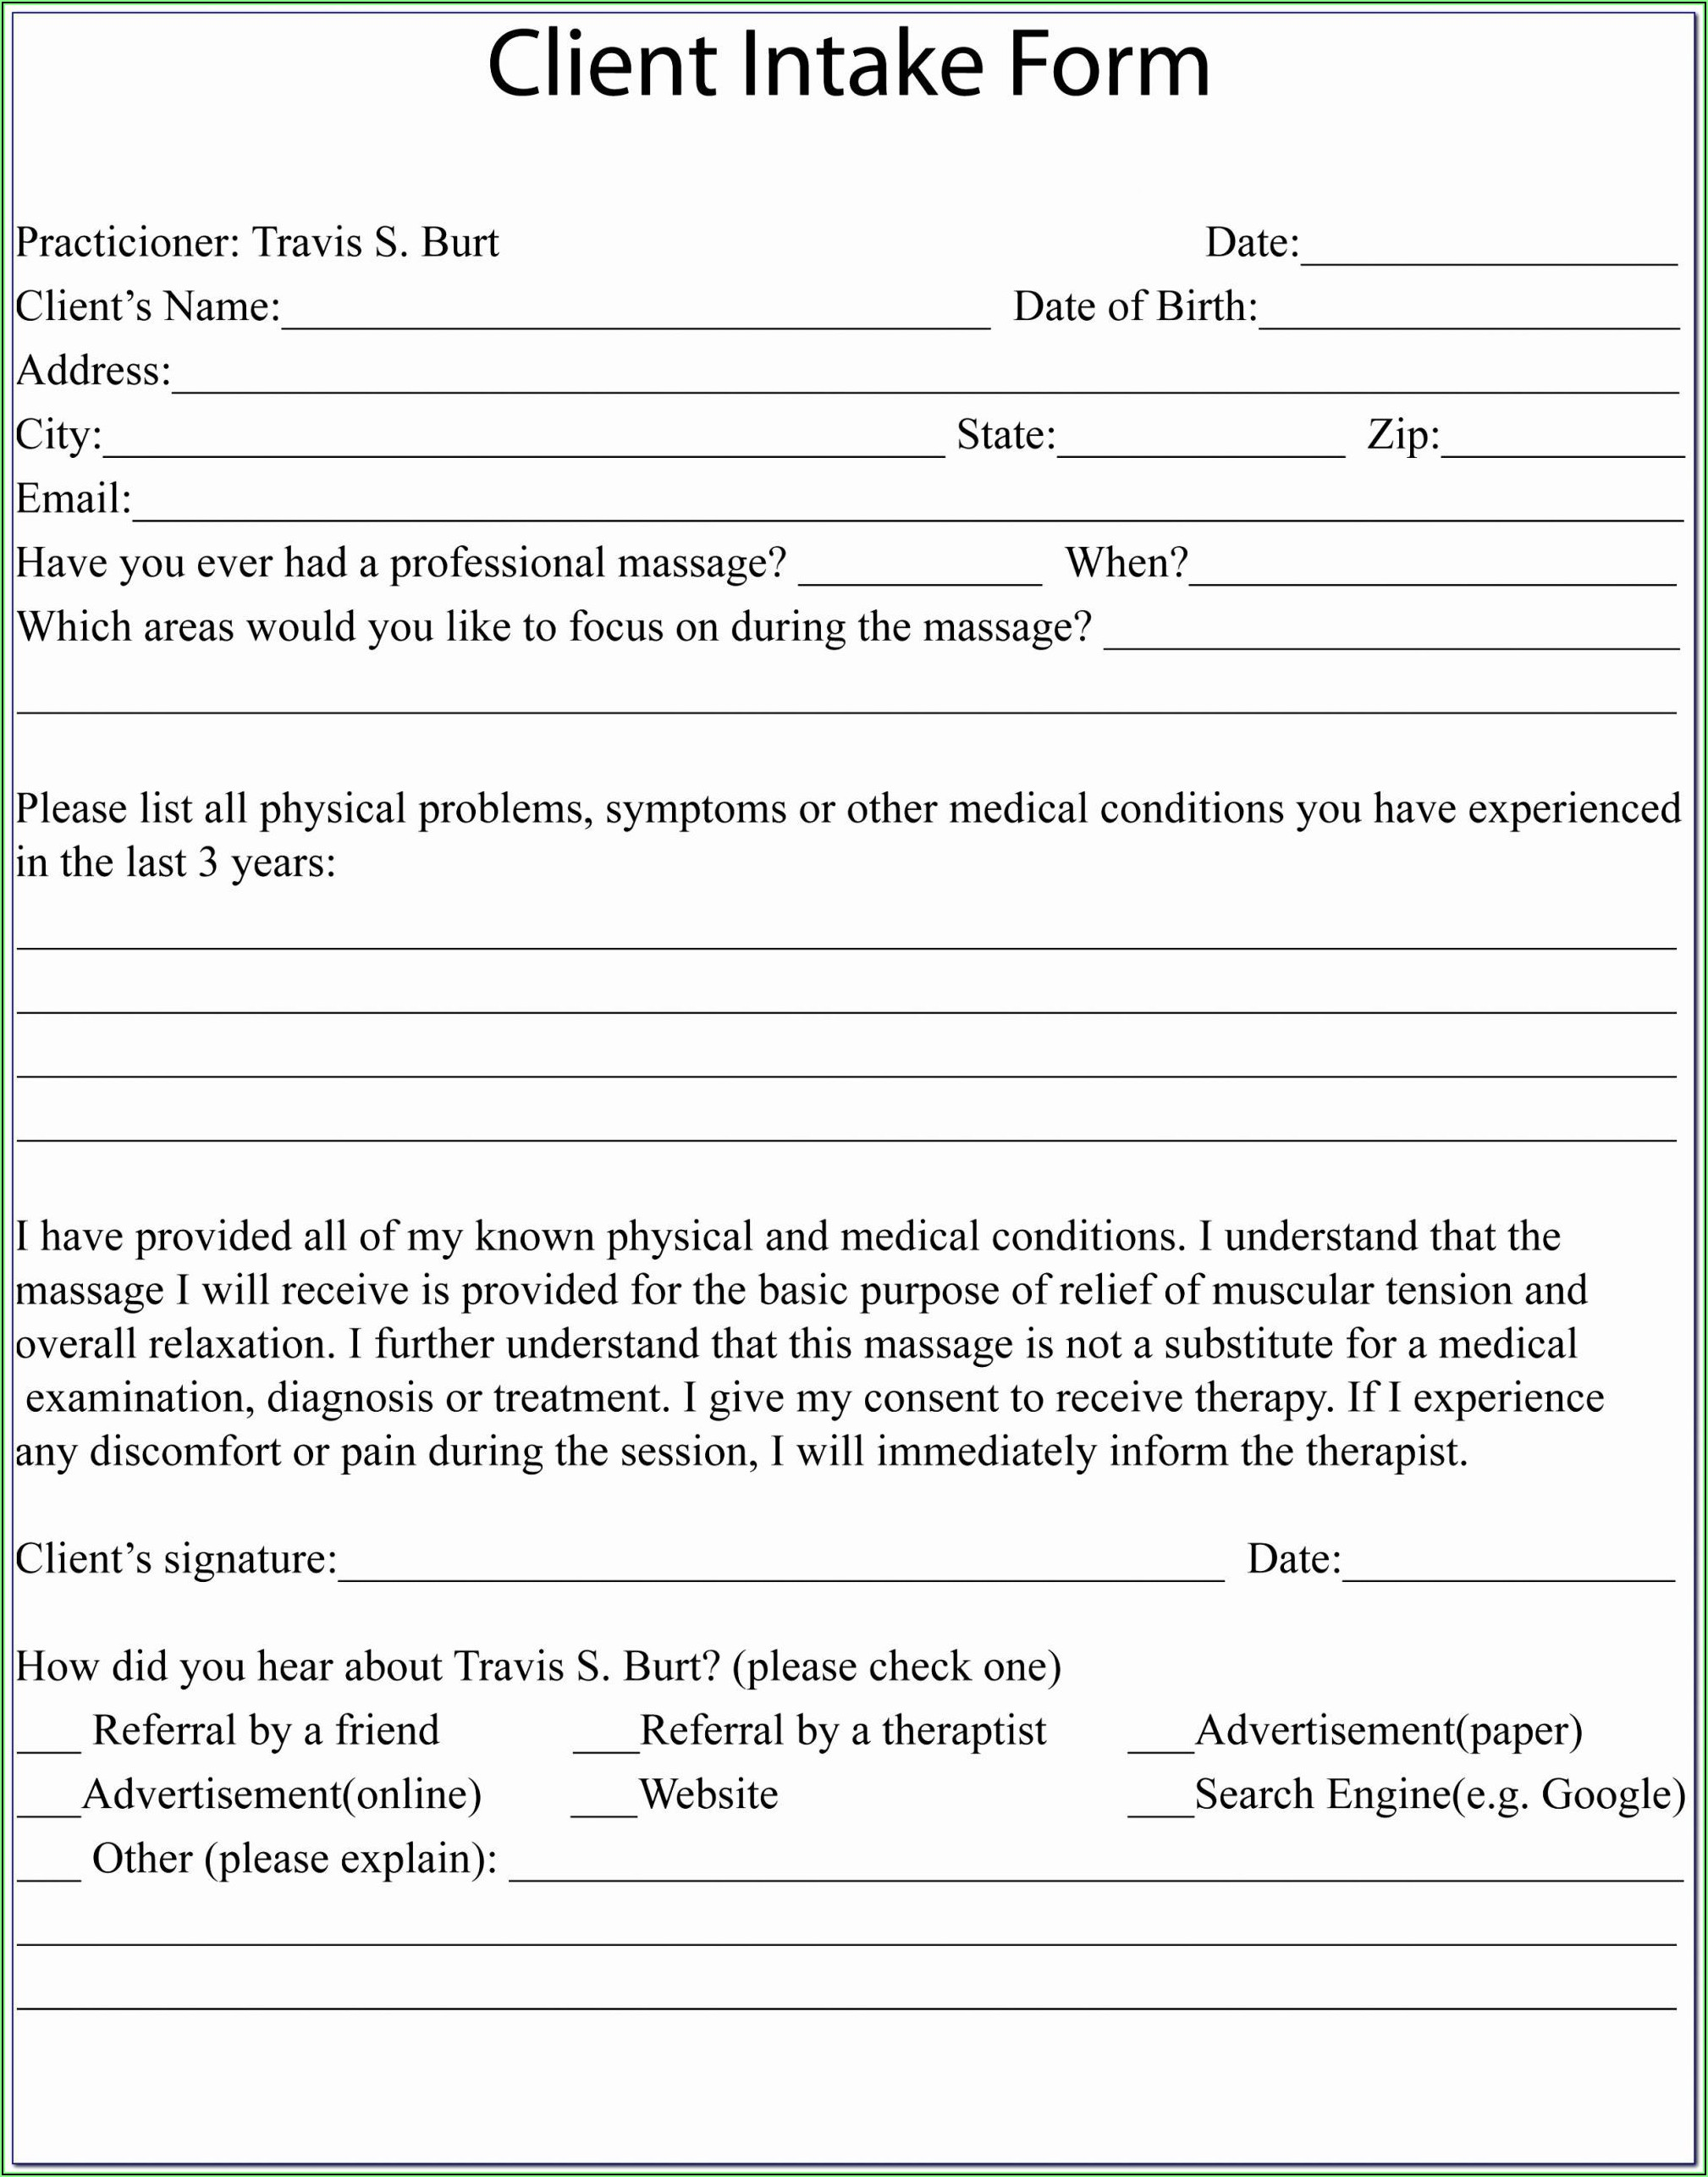 Client Intake Form Psychotherapy